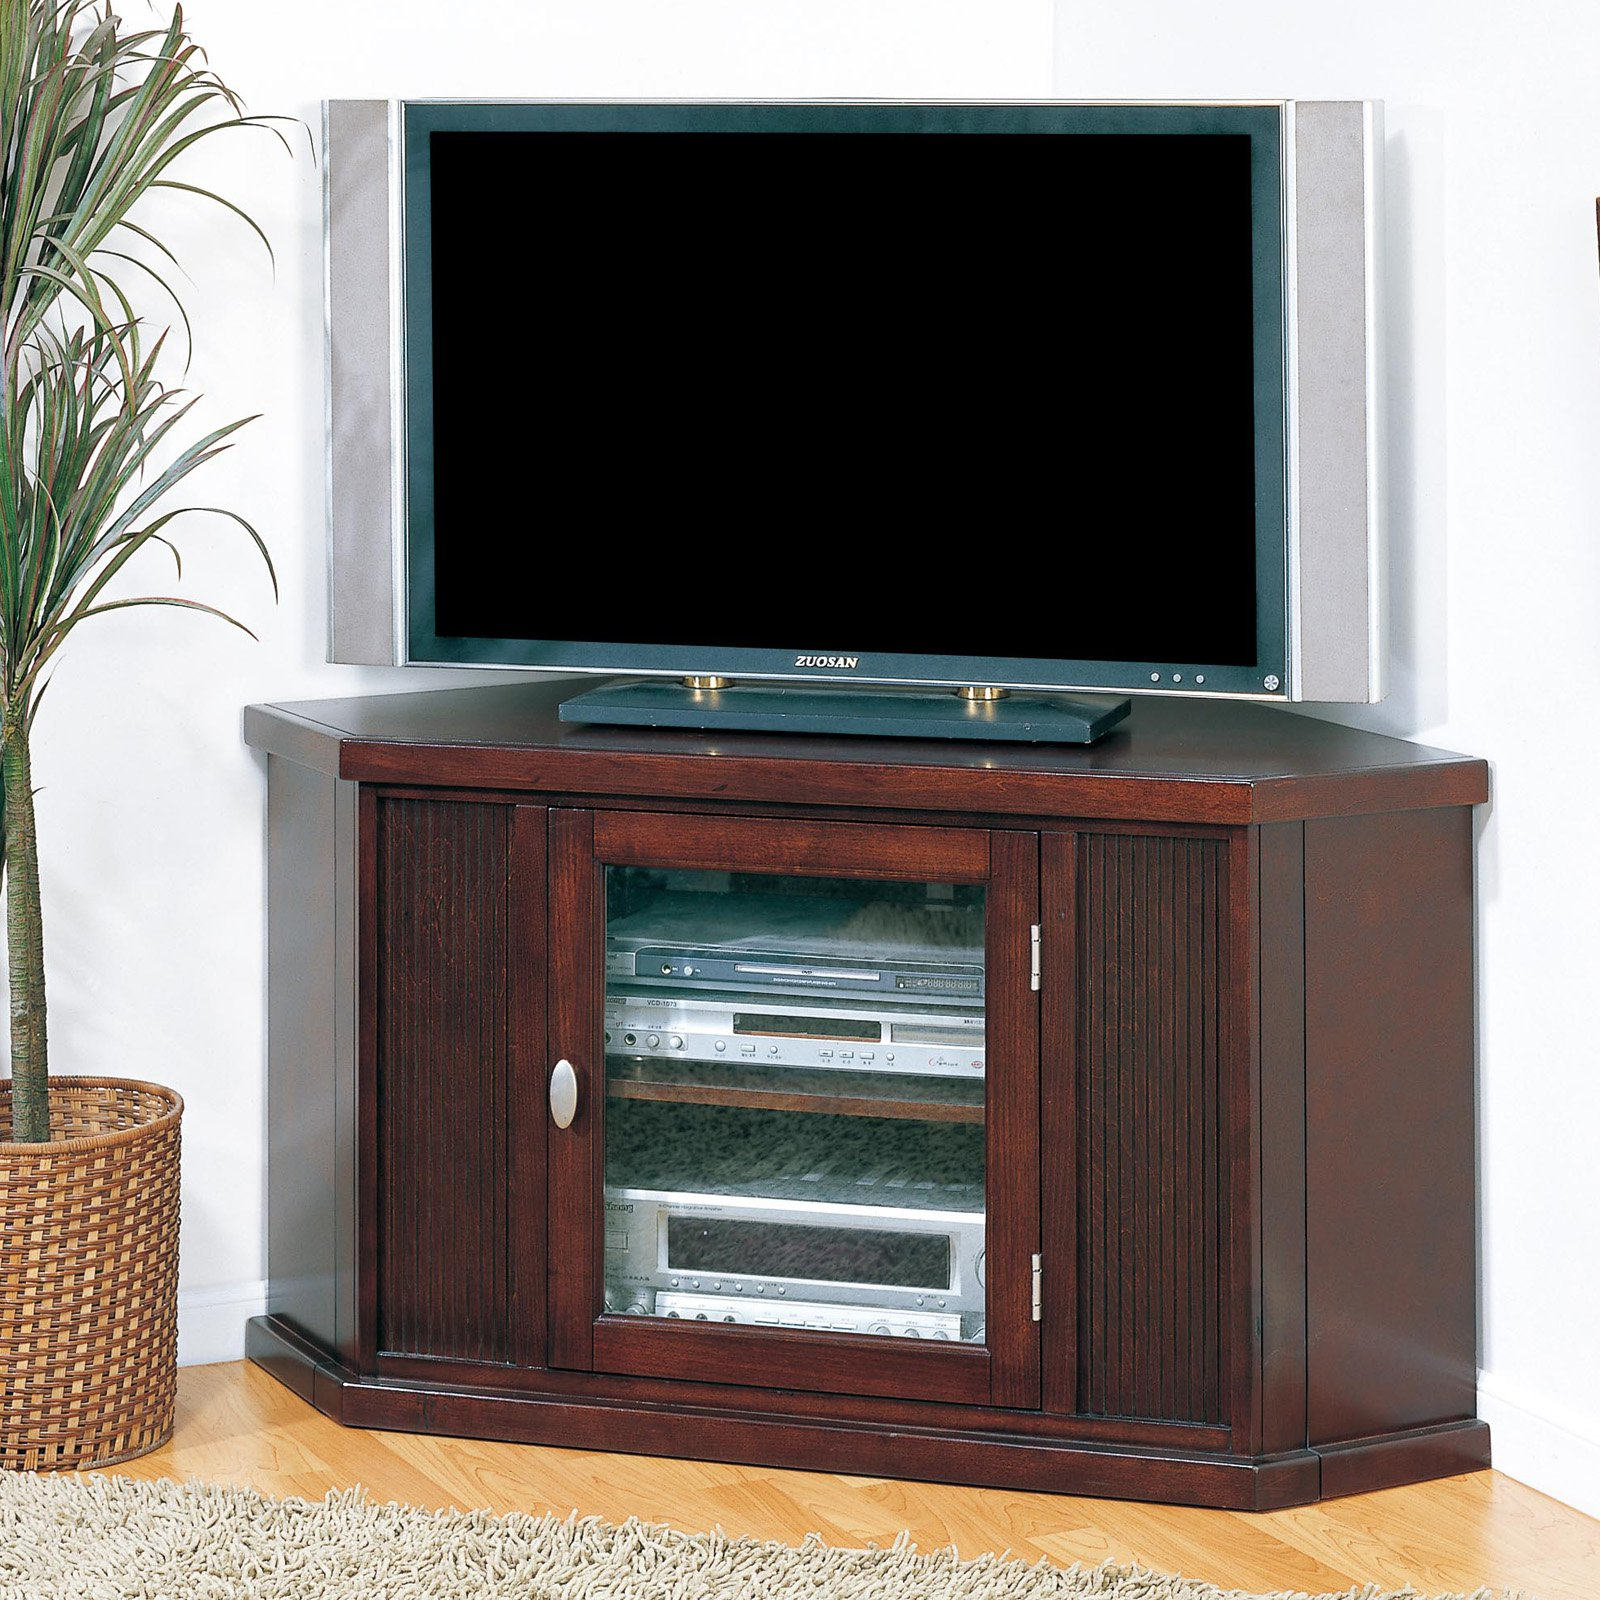 Leick 86285 Riley Holliday Espresso 46 in. Corner TV Console by Leick Furniture